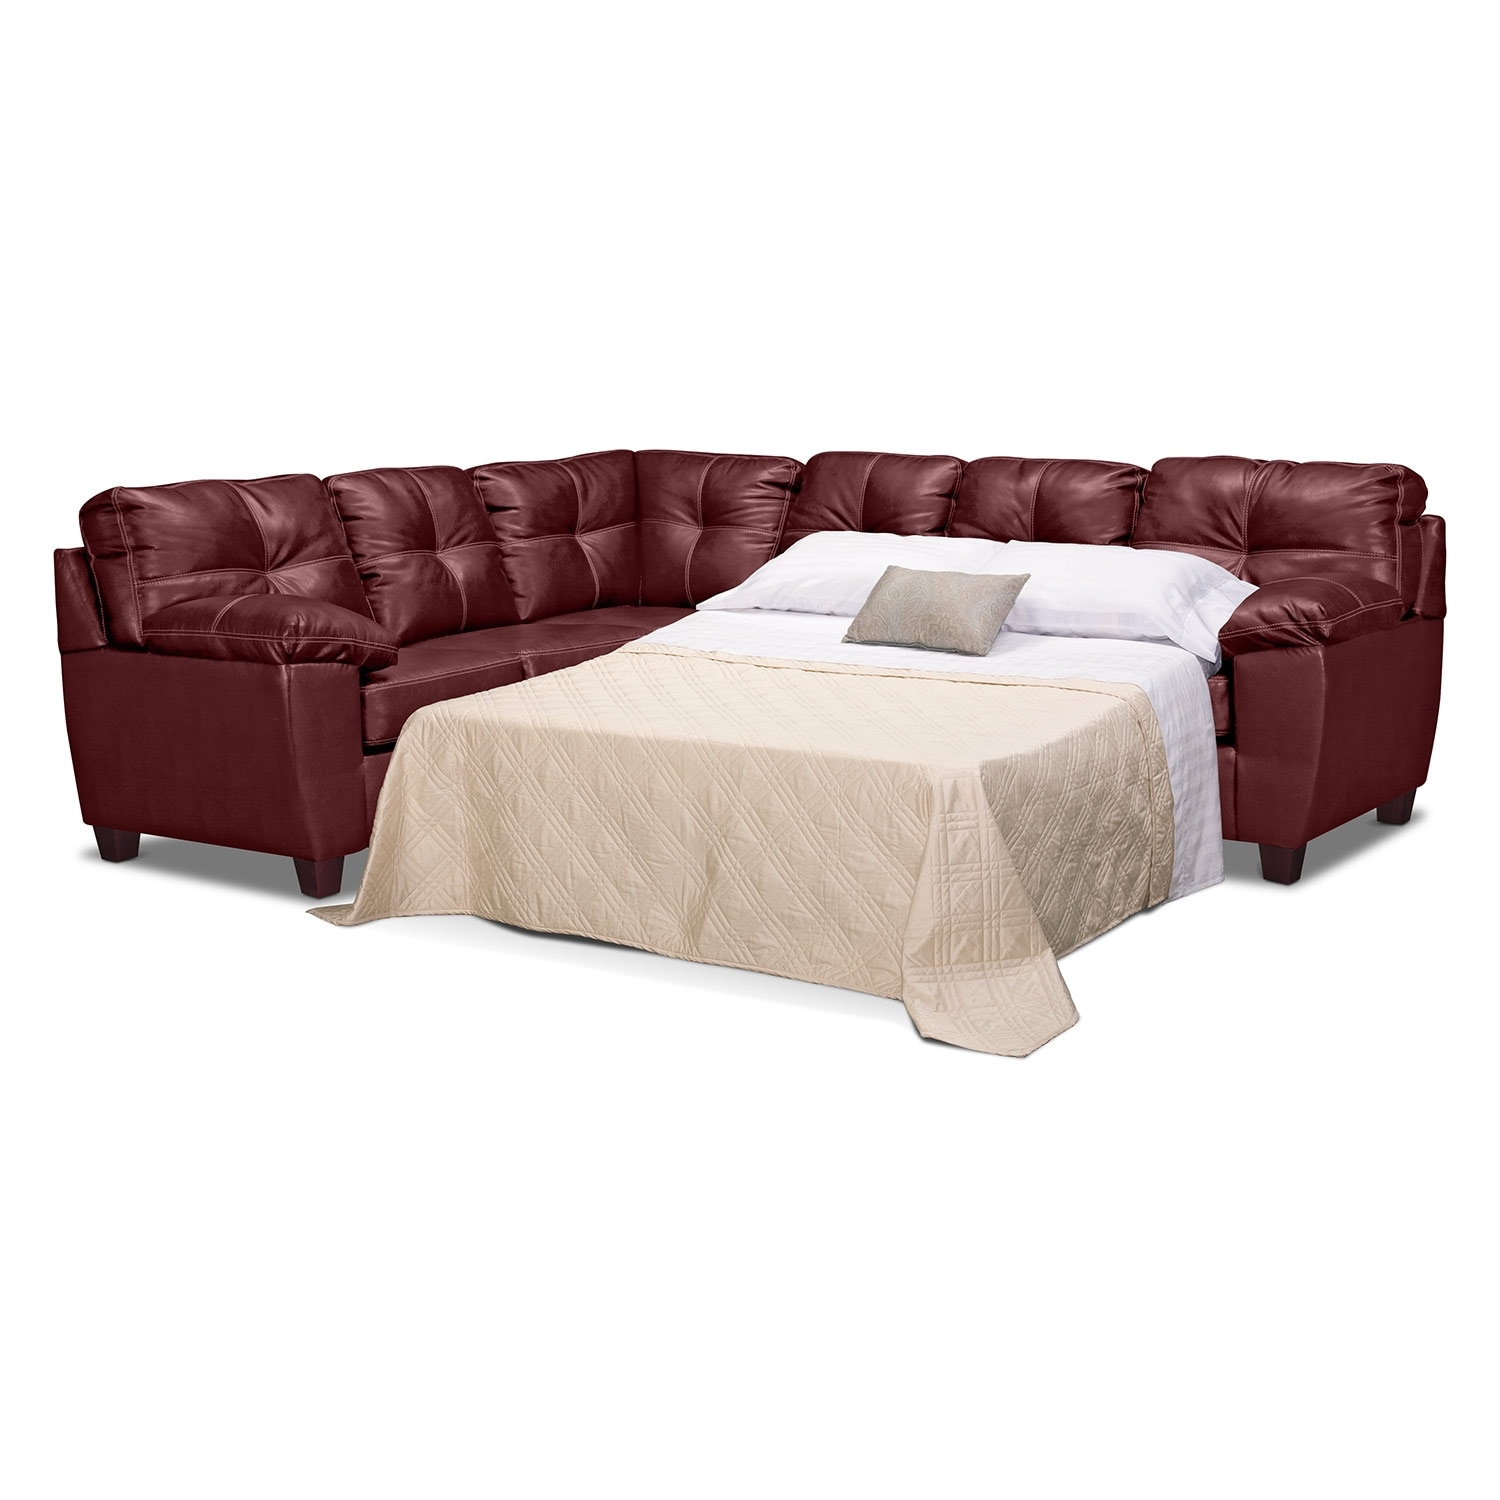 Rialto Ii Leather 2 Pc Sleeper Sectional Value City Furniture